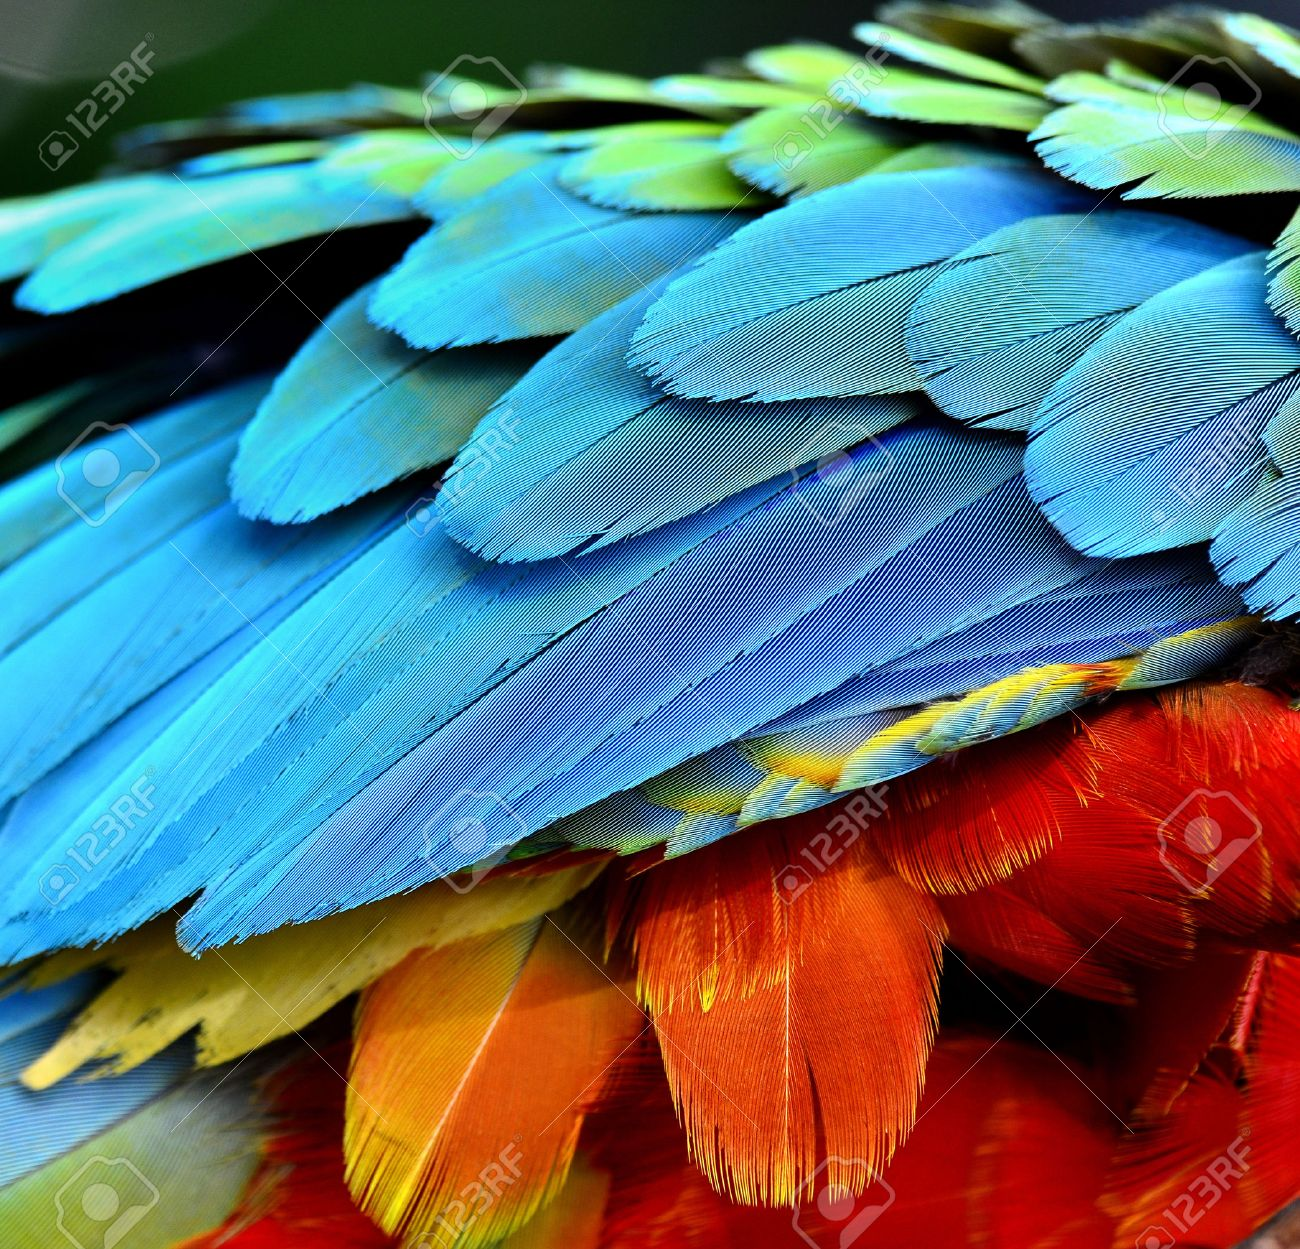 Bird feathers pictures